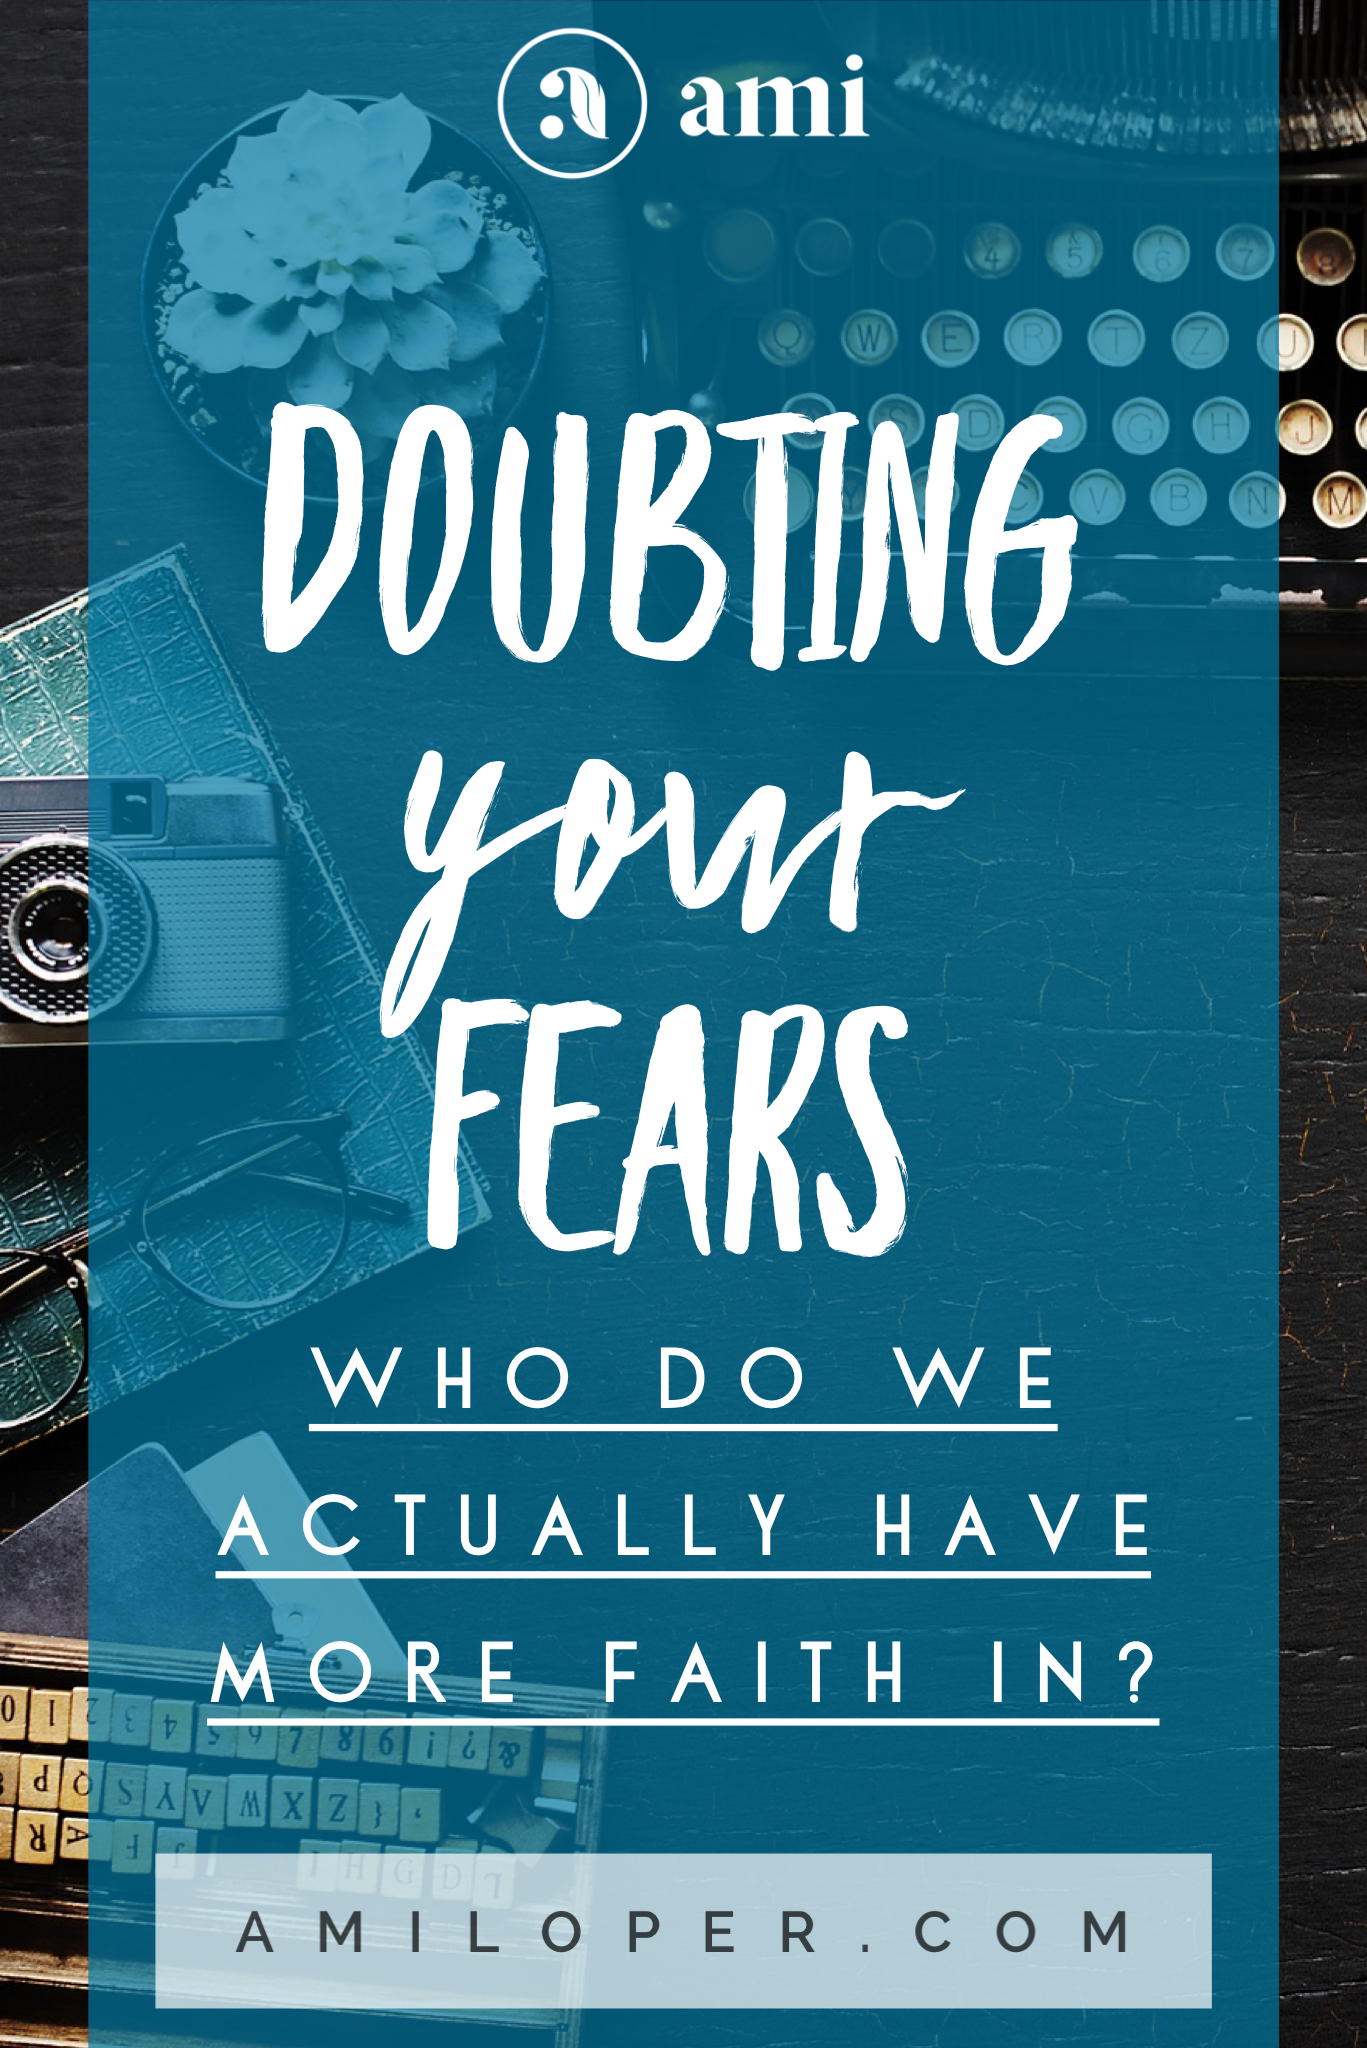 I used to be crippled by fear. Having been a fearful child, and then having been abused, threatened and stalked as a young adult, my filter saw everything through a lens of fear. But then a series of events began to expose the true nature of fear! #FearVSFaith #Faith #HaveFaith #ChristianBlog